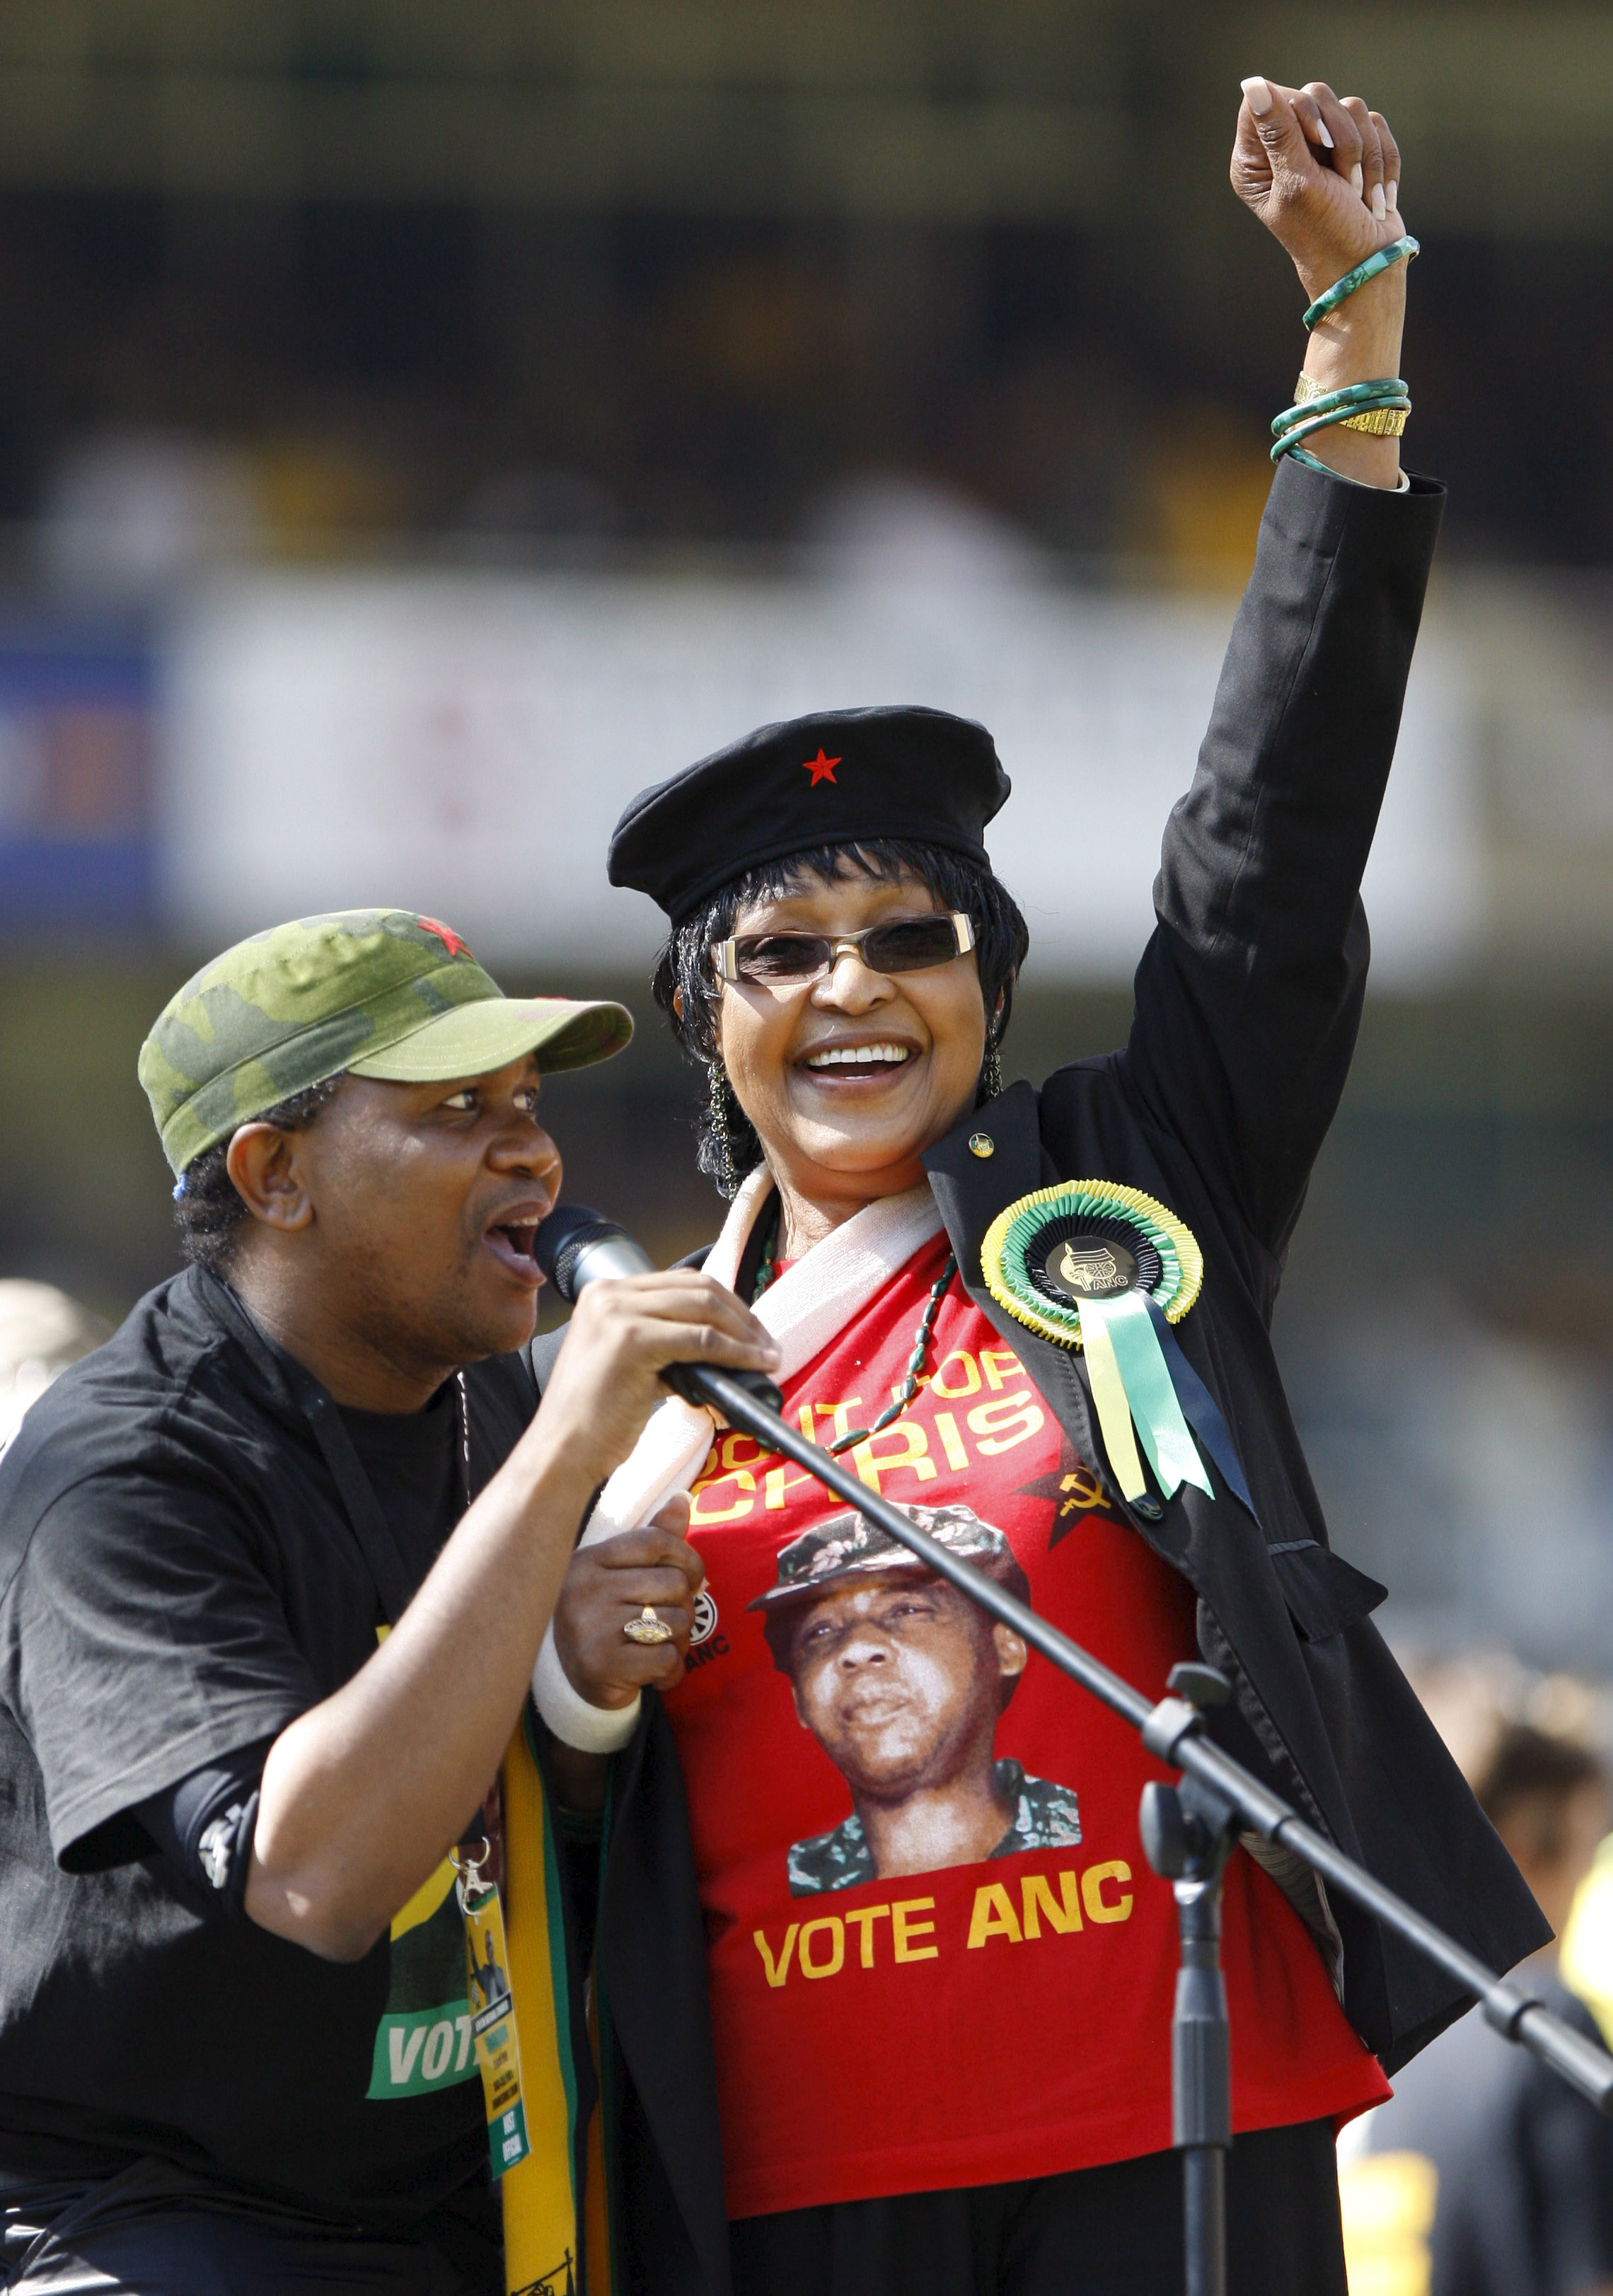 TCDS Professor Shireen Hassim of the University of the Witwatersrand publishes obituary for the late Winnie Mandela